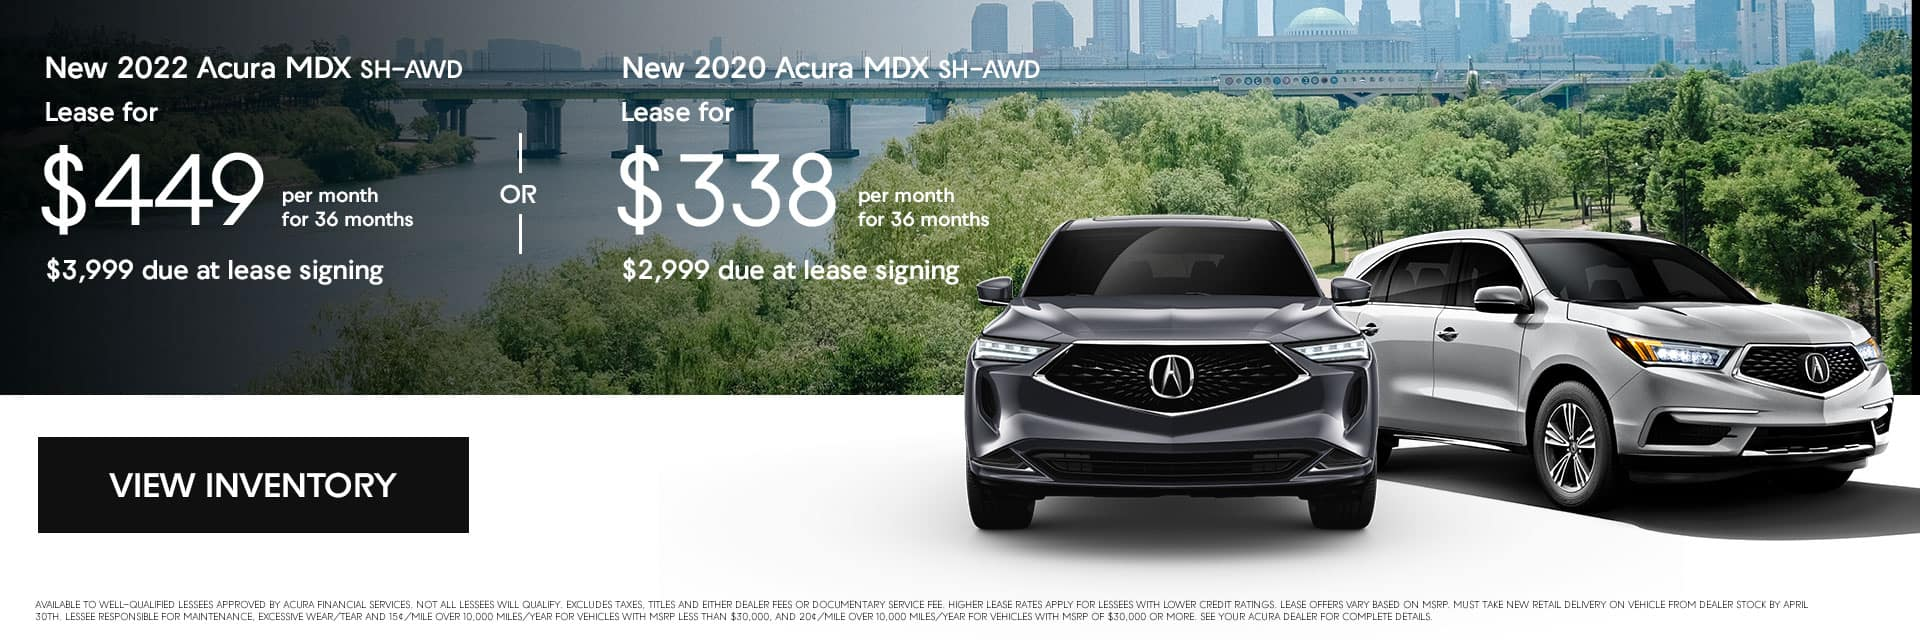 New 2022 Acura MDX SH-AWD, New 2020 Acura MDX SH-AWD, Lease for $449.00 per month for 36 months $3,999 due at lease signing, Lease for $338.00 per month for 36 months $2,999 due at lease signing.